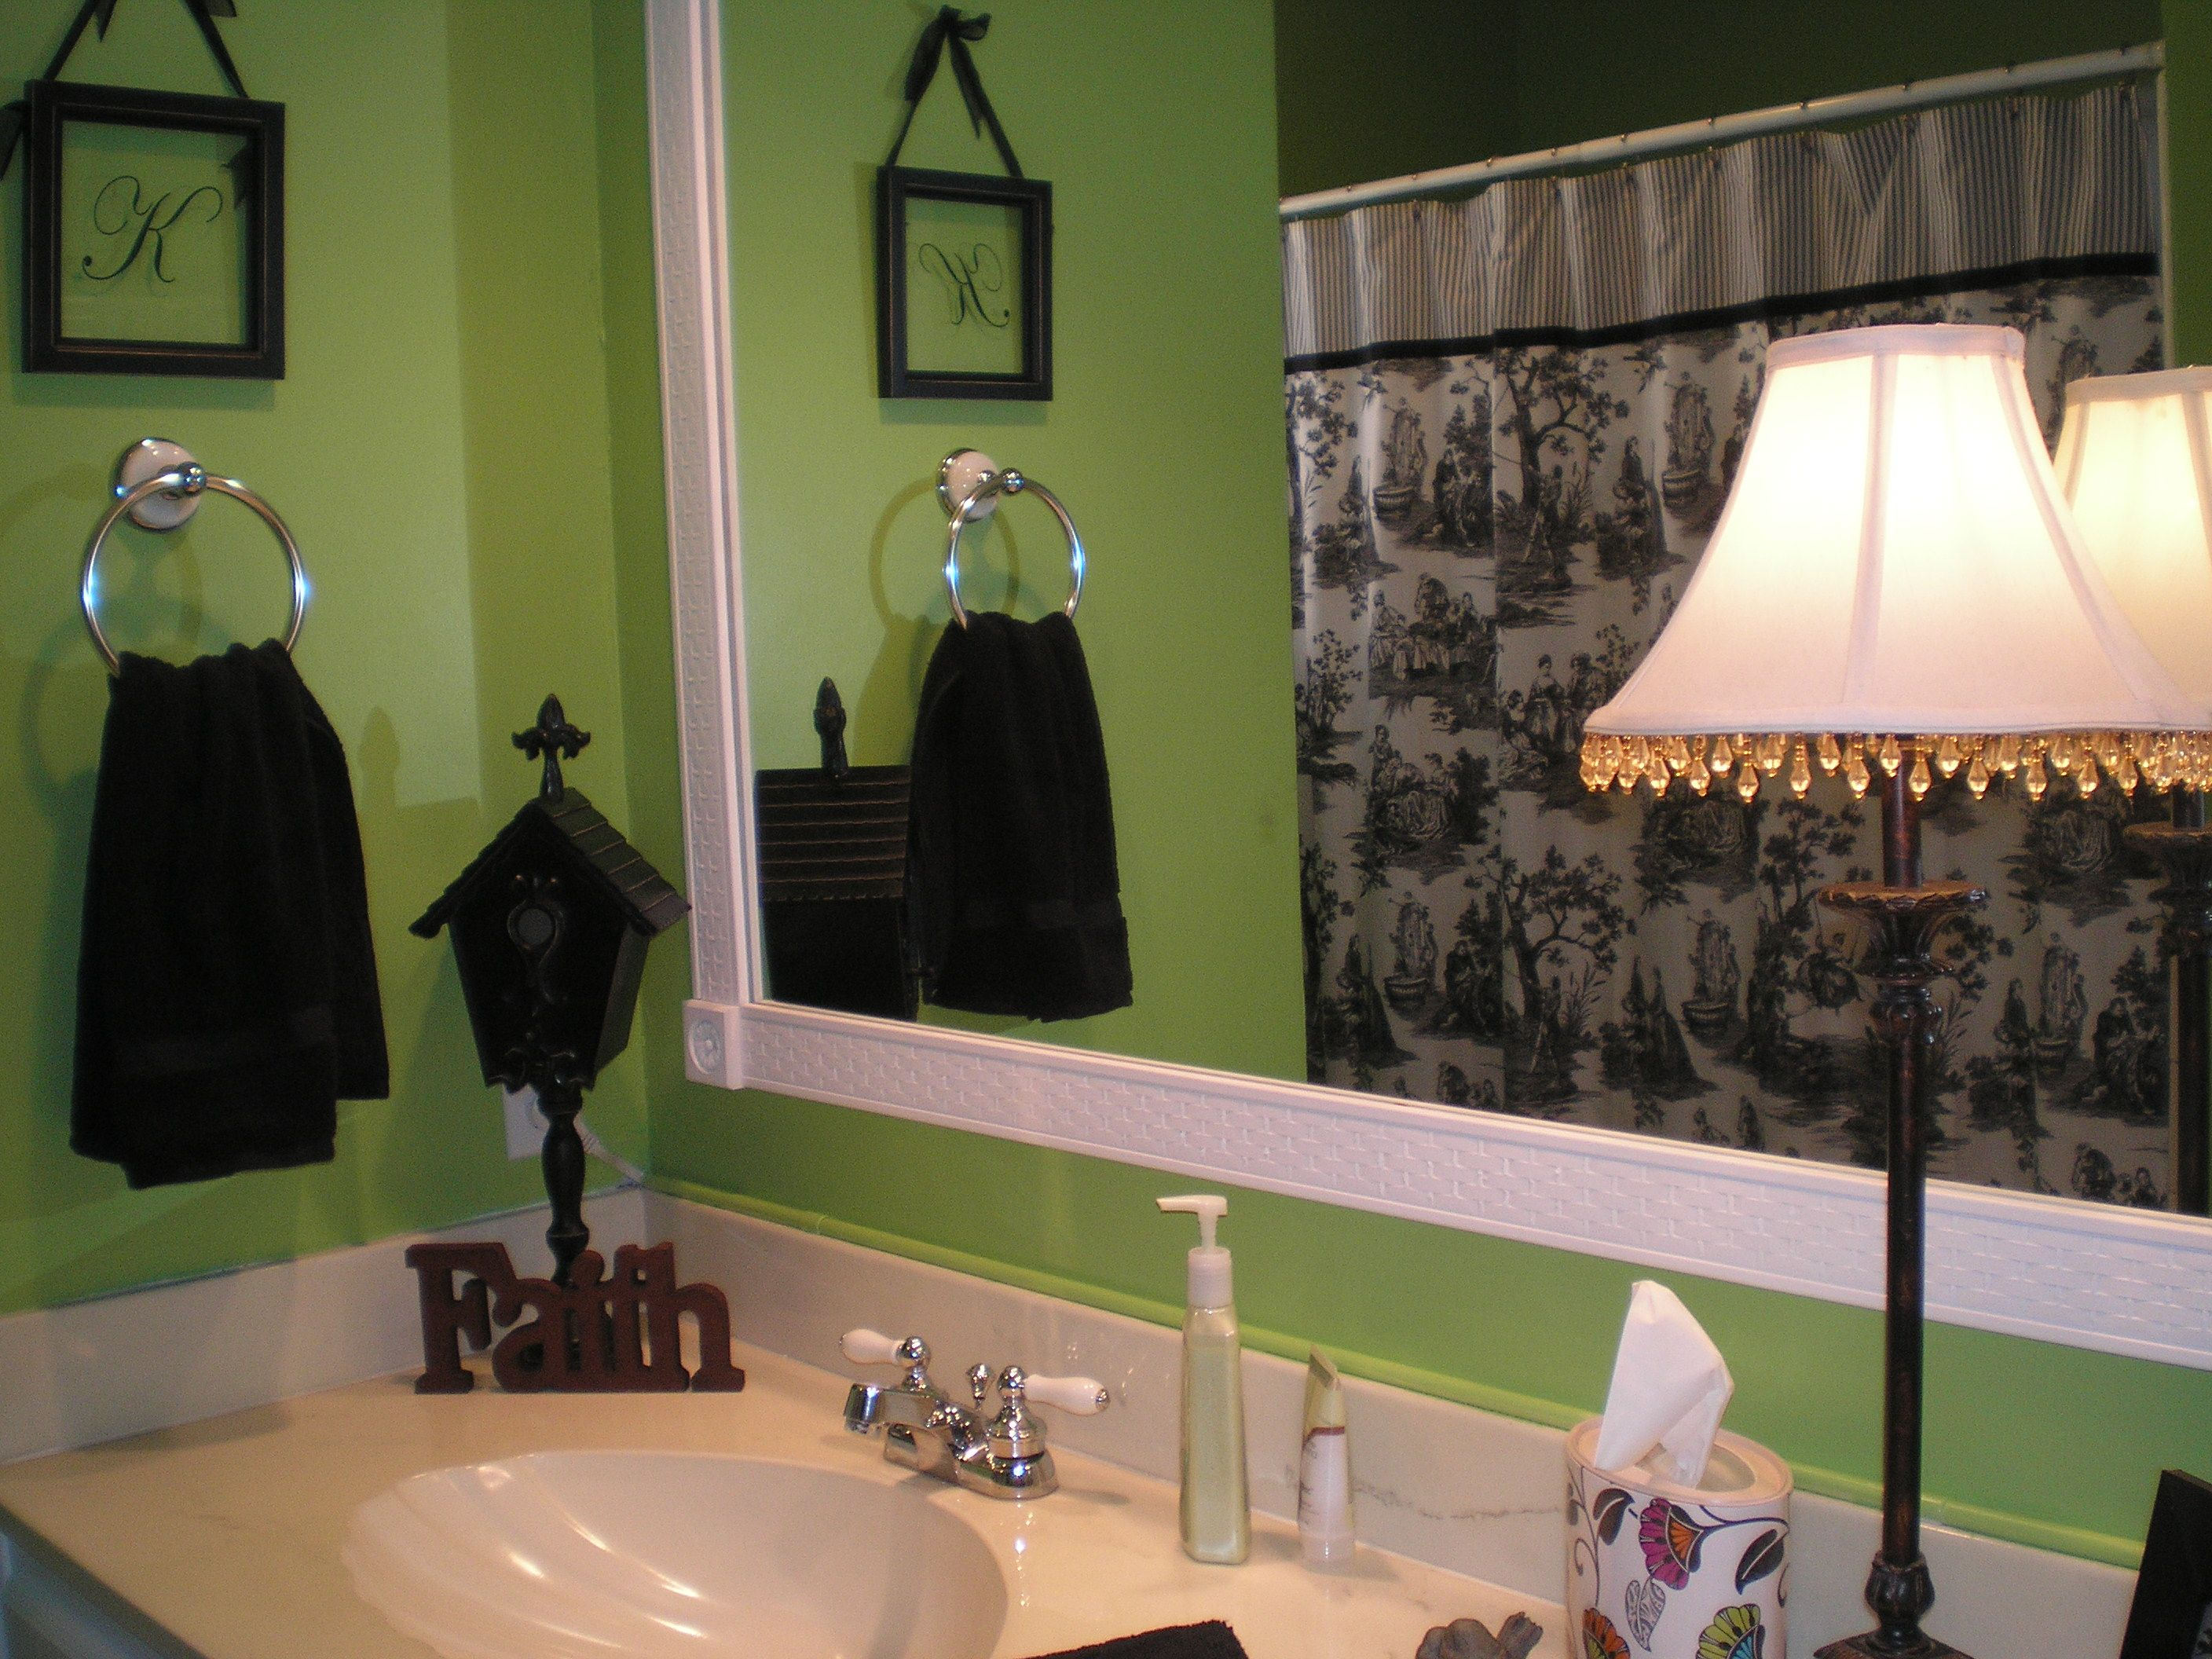 Black and white and red bathroom ideas - My Lime Green Bathroom With Black White And Red Accents I Switch Out The